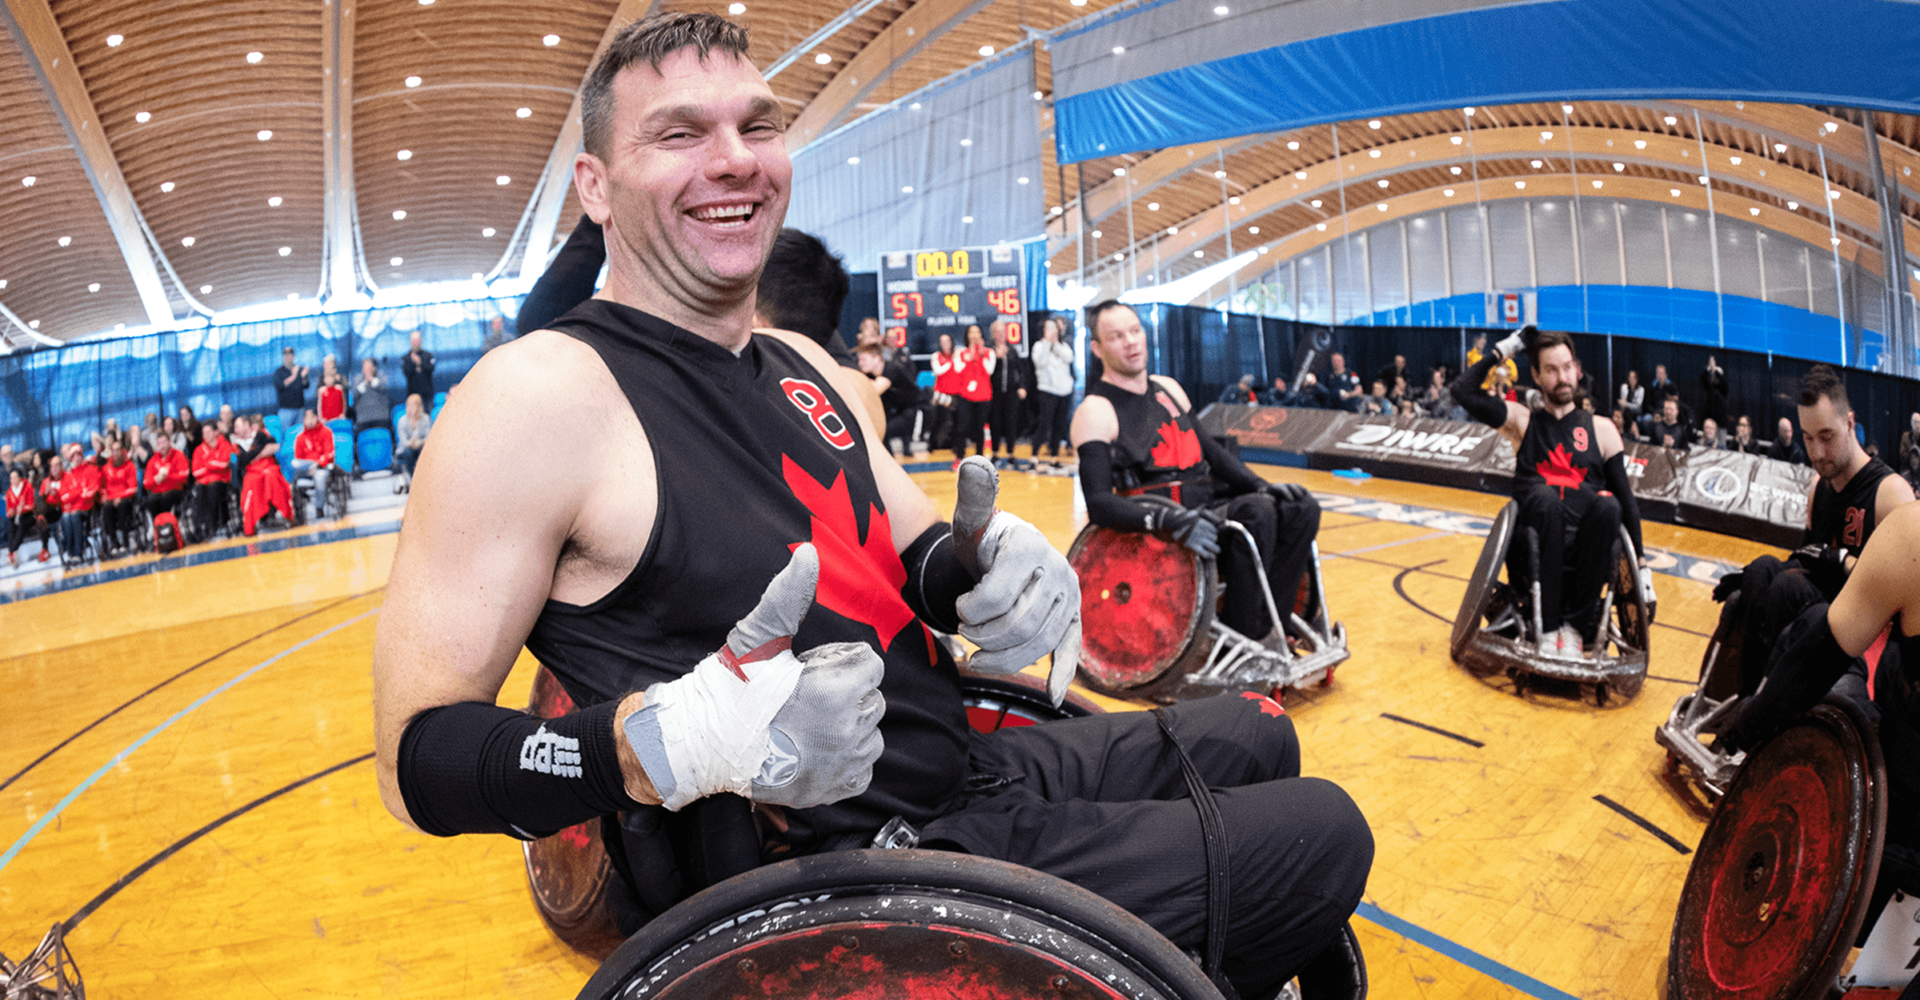 Mike Whitehead is seeking nomination to the CPC Athletes' Council